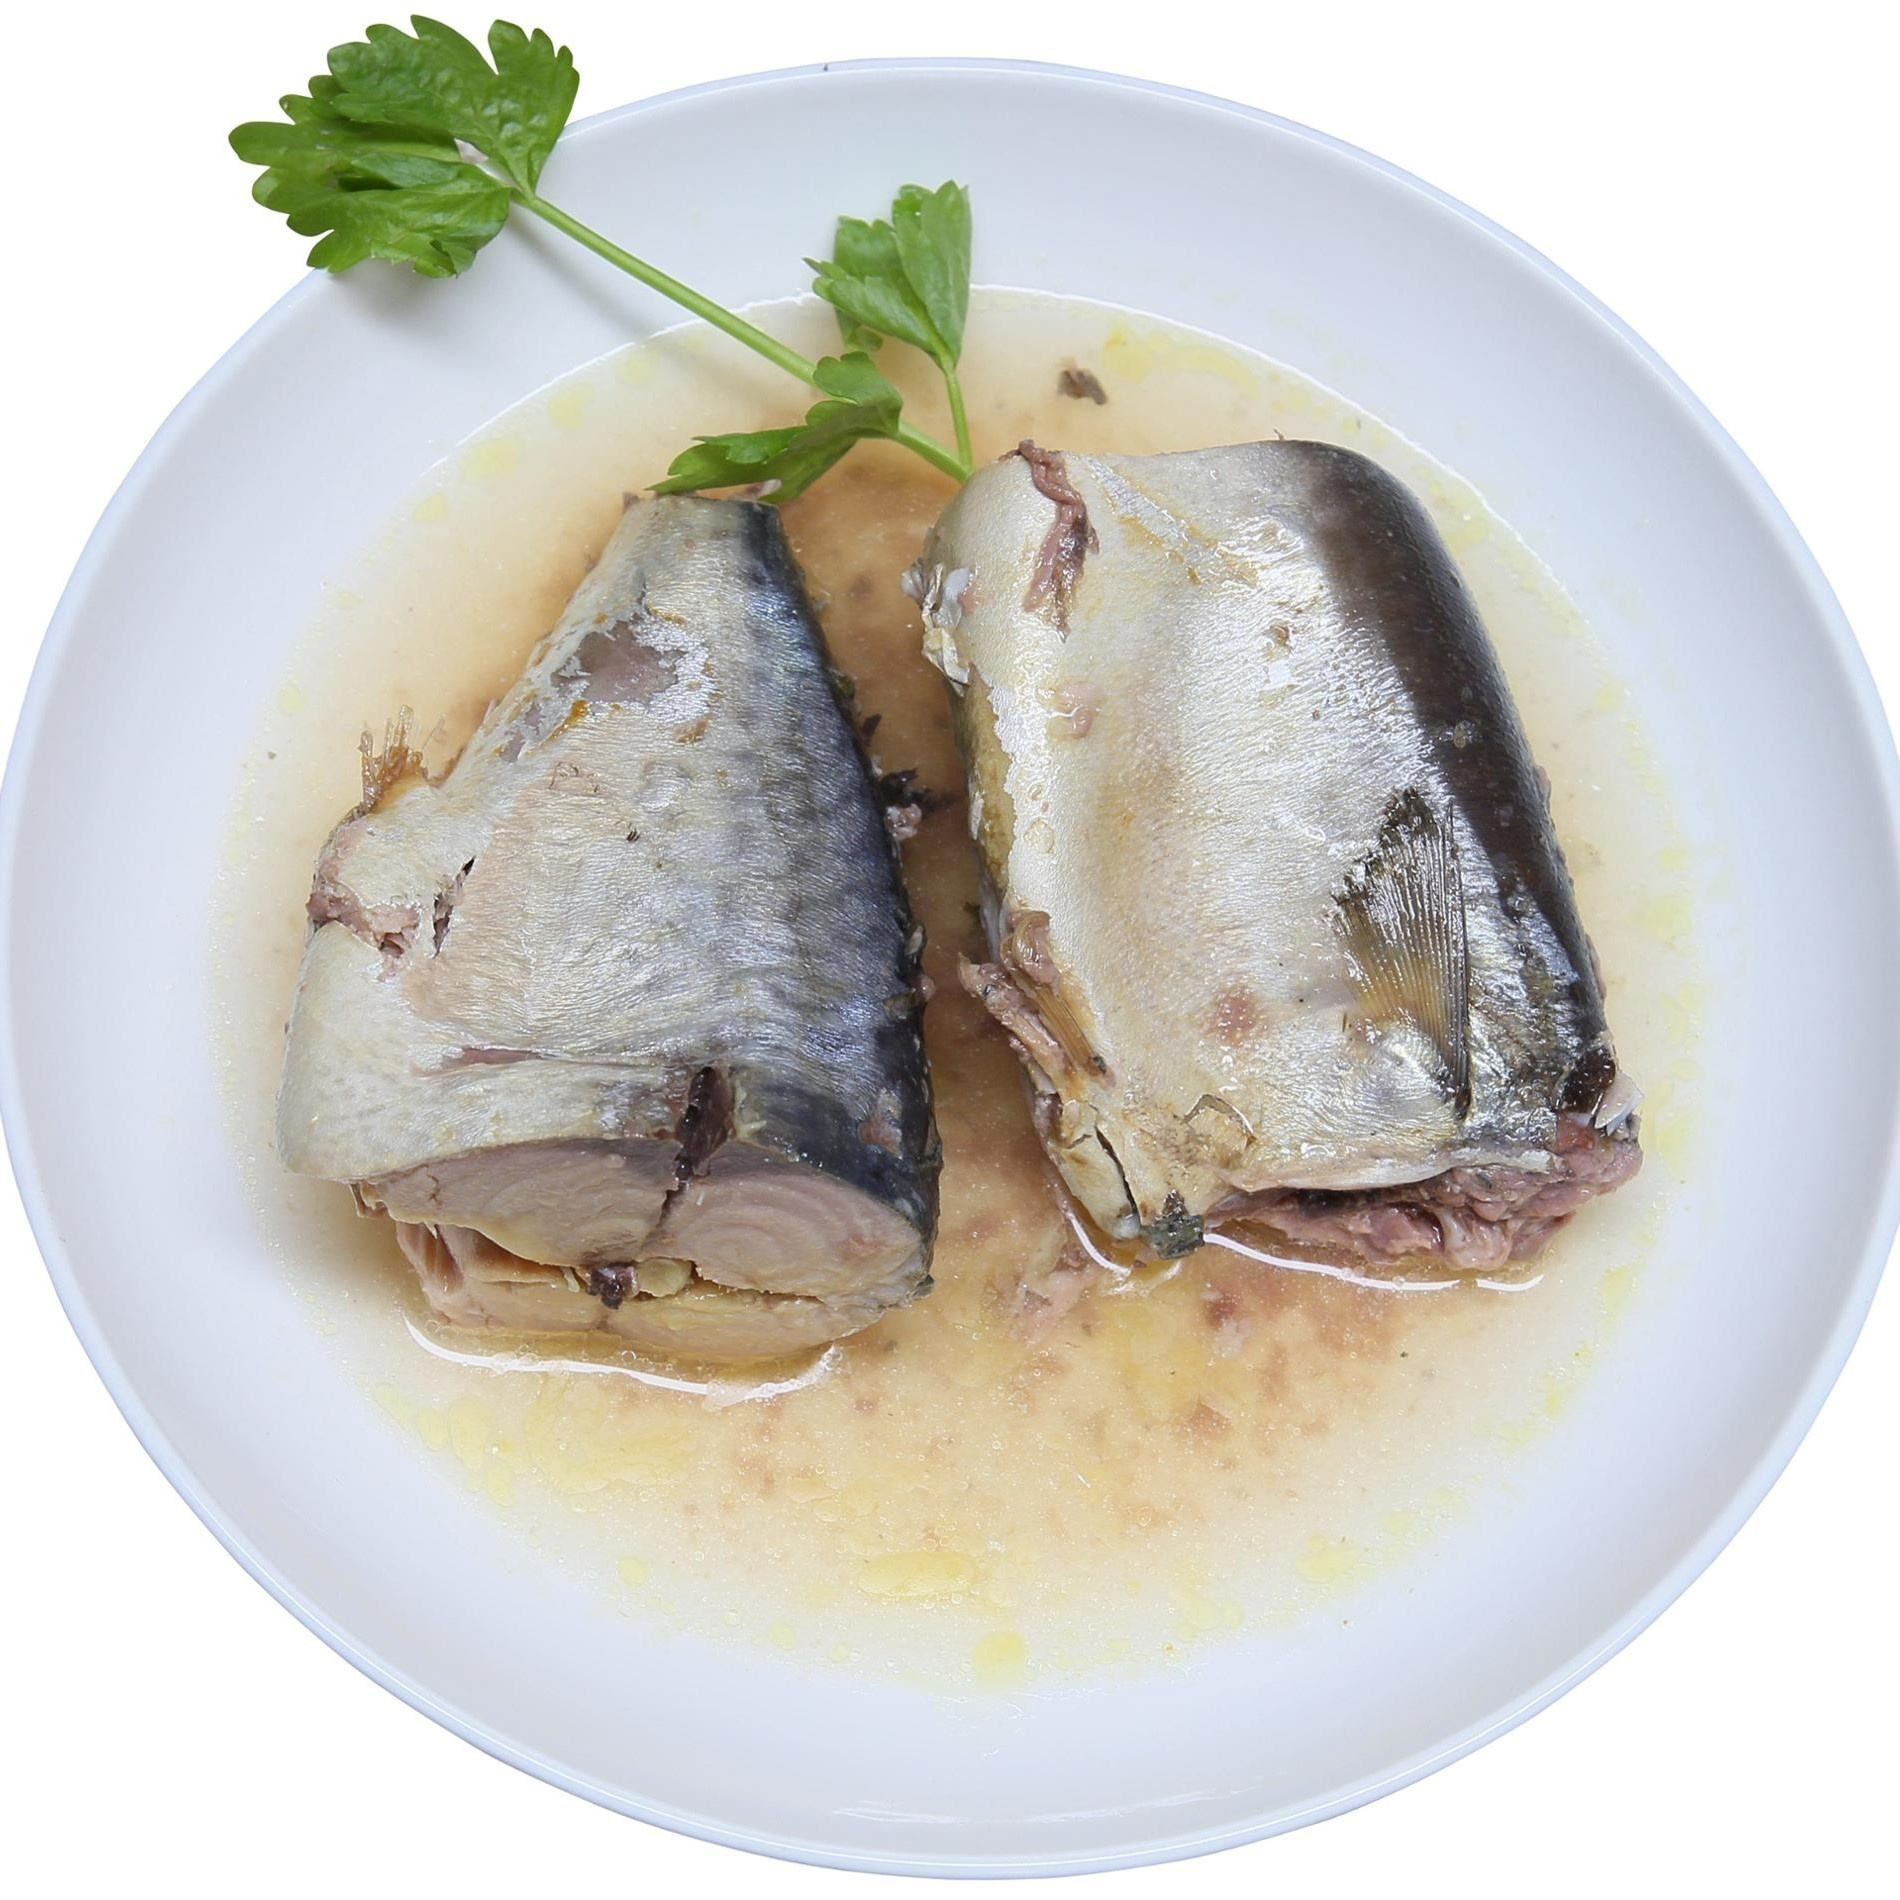 Canned mackerel fish, canned tuna fish, canned Sardine fish